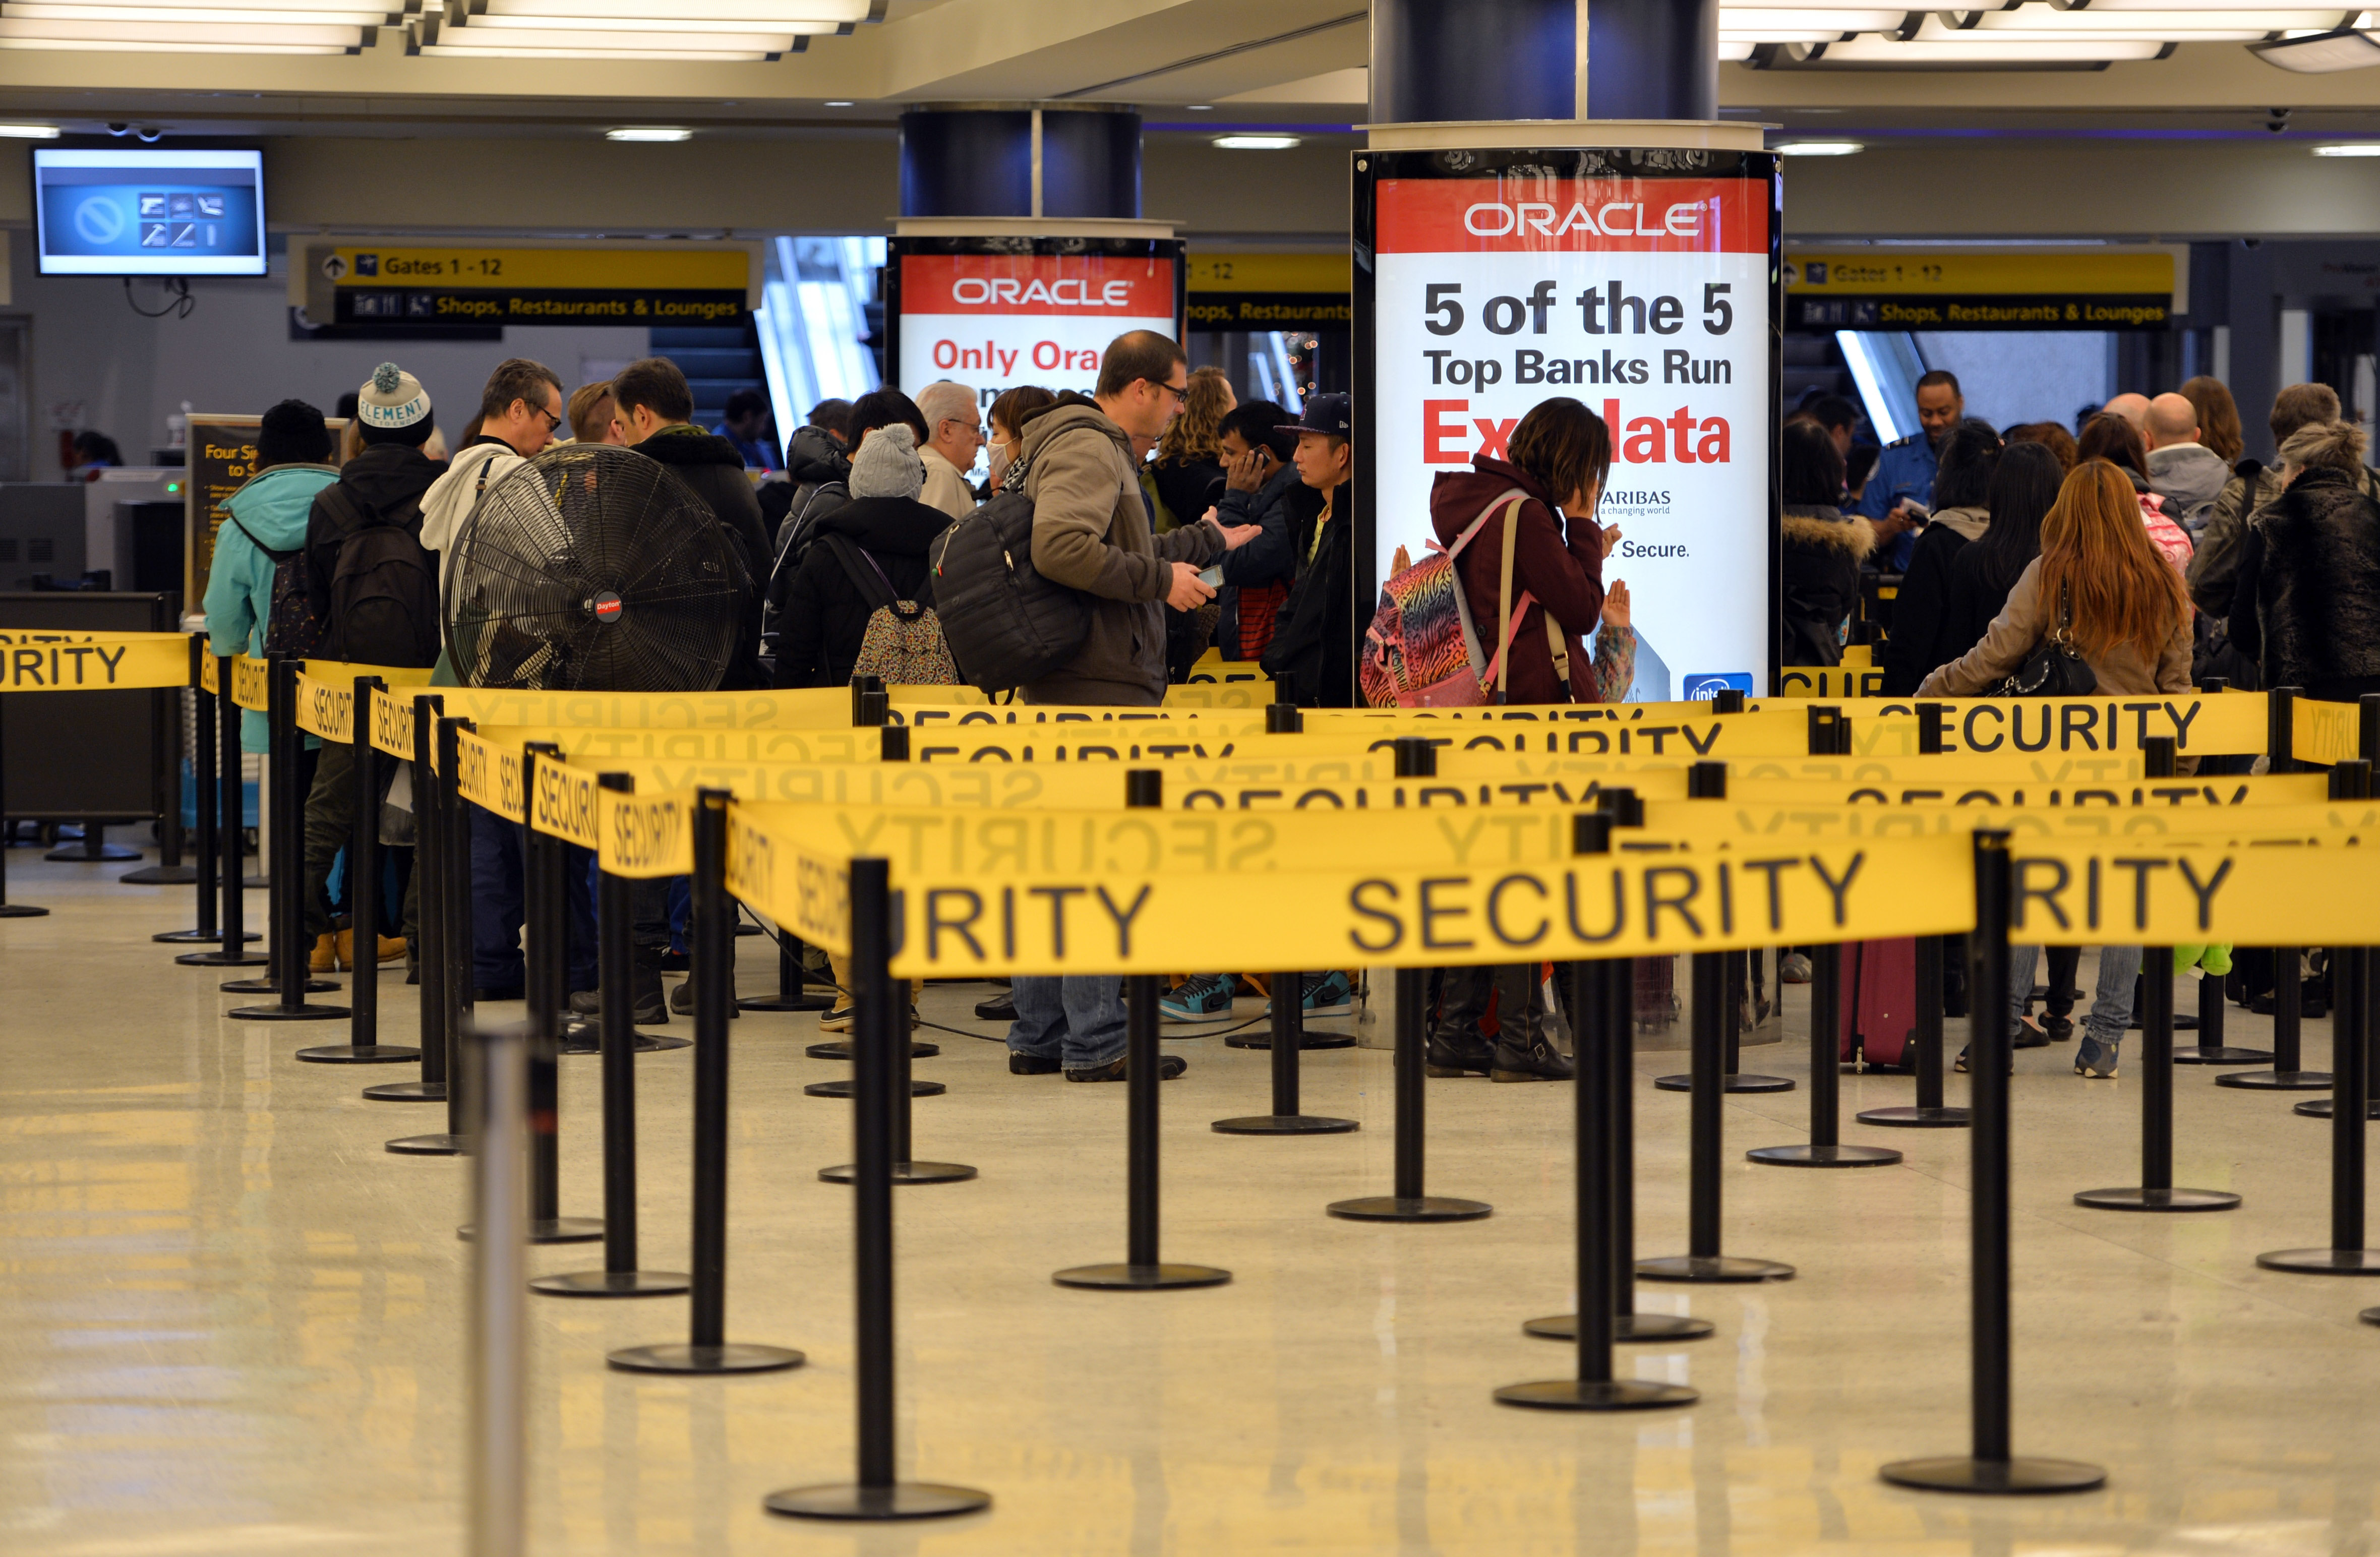 People wait in lines for security check-in at John F. Kennedy International Airport, New York, Jan. 6, 2014. (Stan Honda/Getty Images)